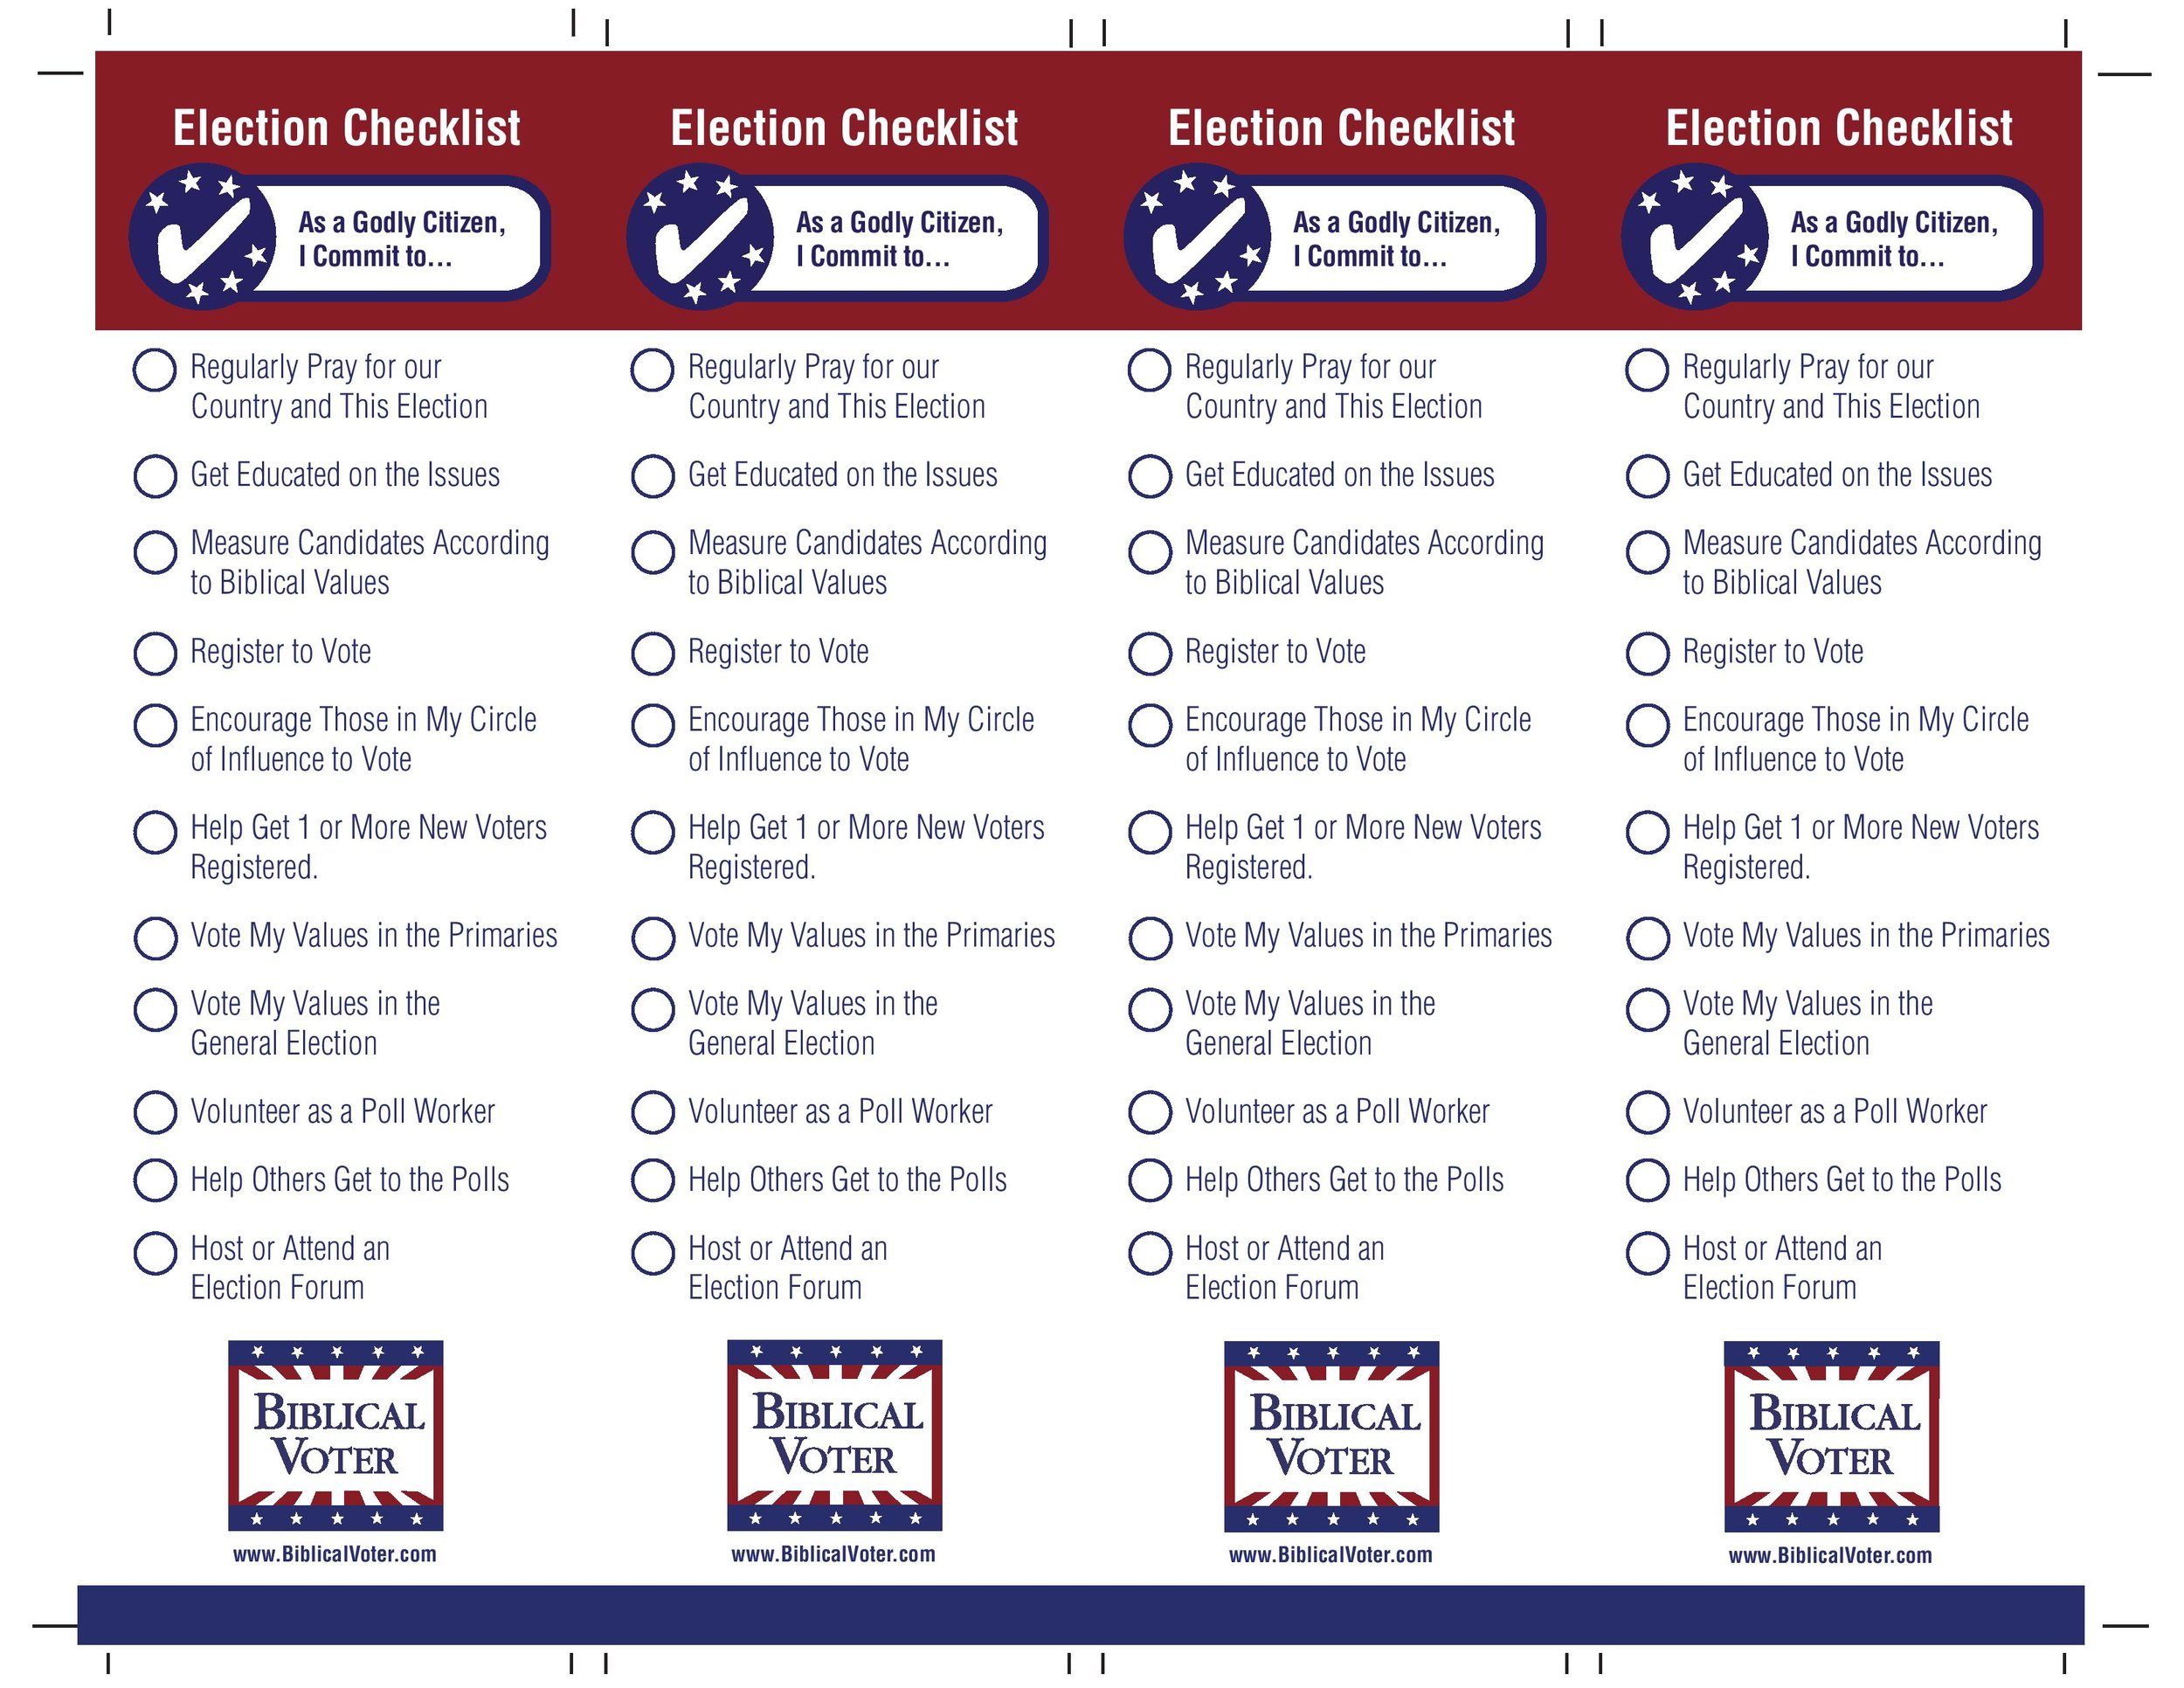 Biblical Voter Election Checklist 2019-page-001.jpg